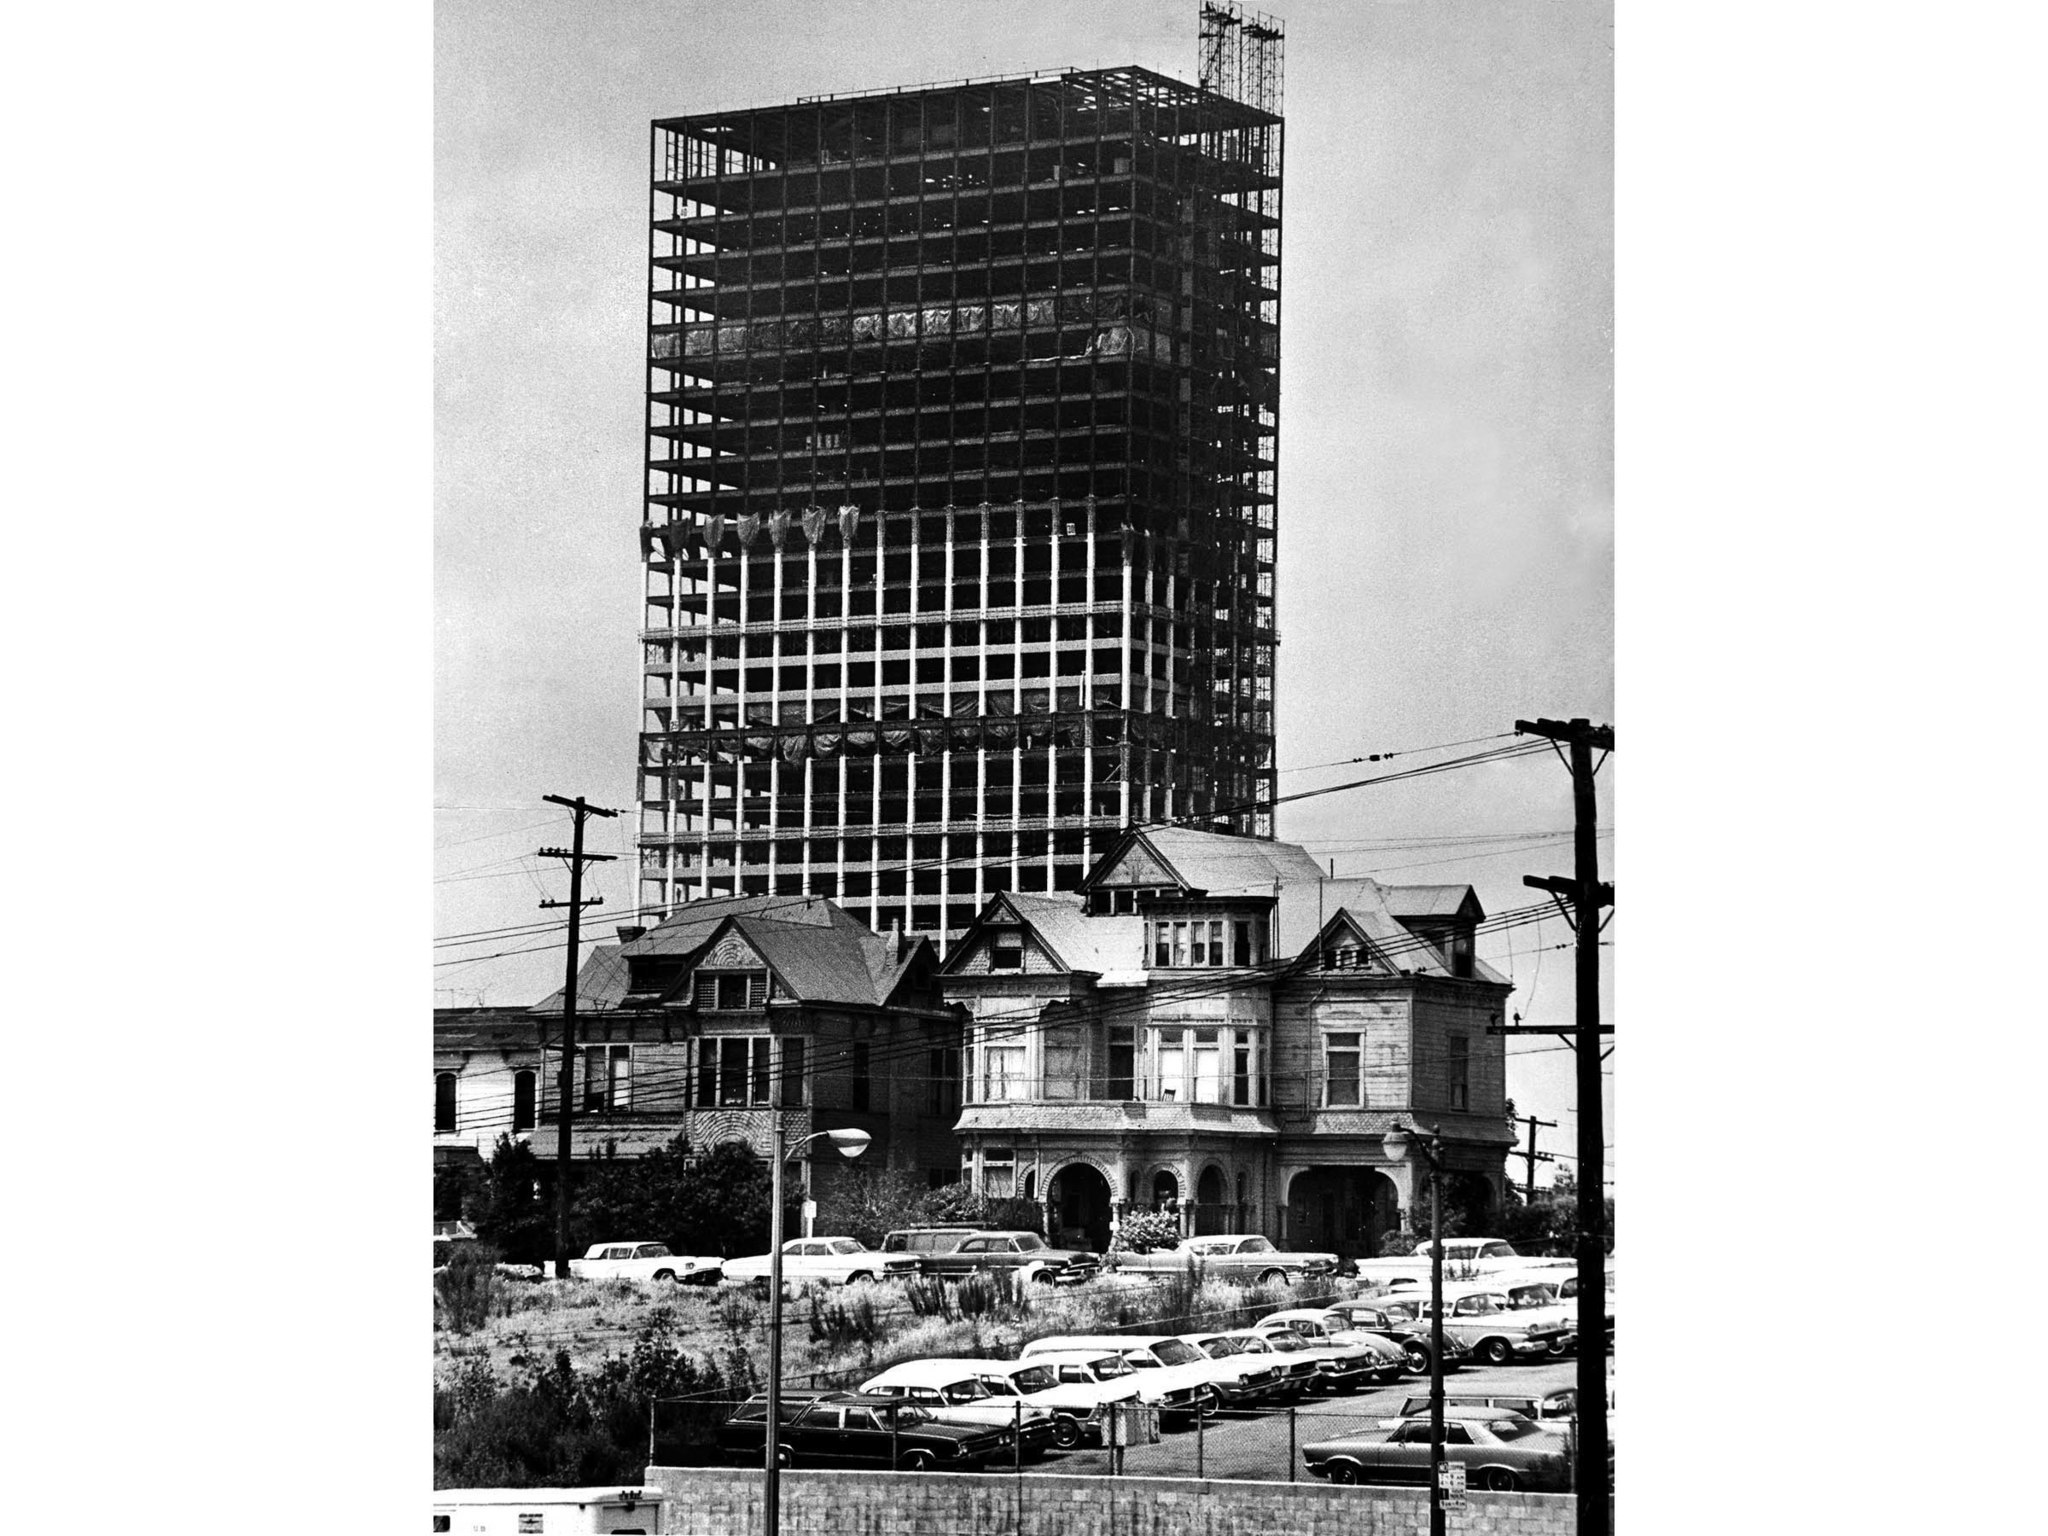 1966 file photo by staff photographer John Malmin of the new 42 story Union Bank Building towering o